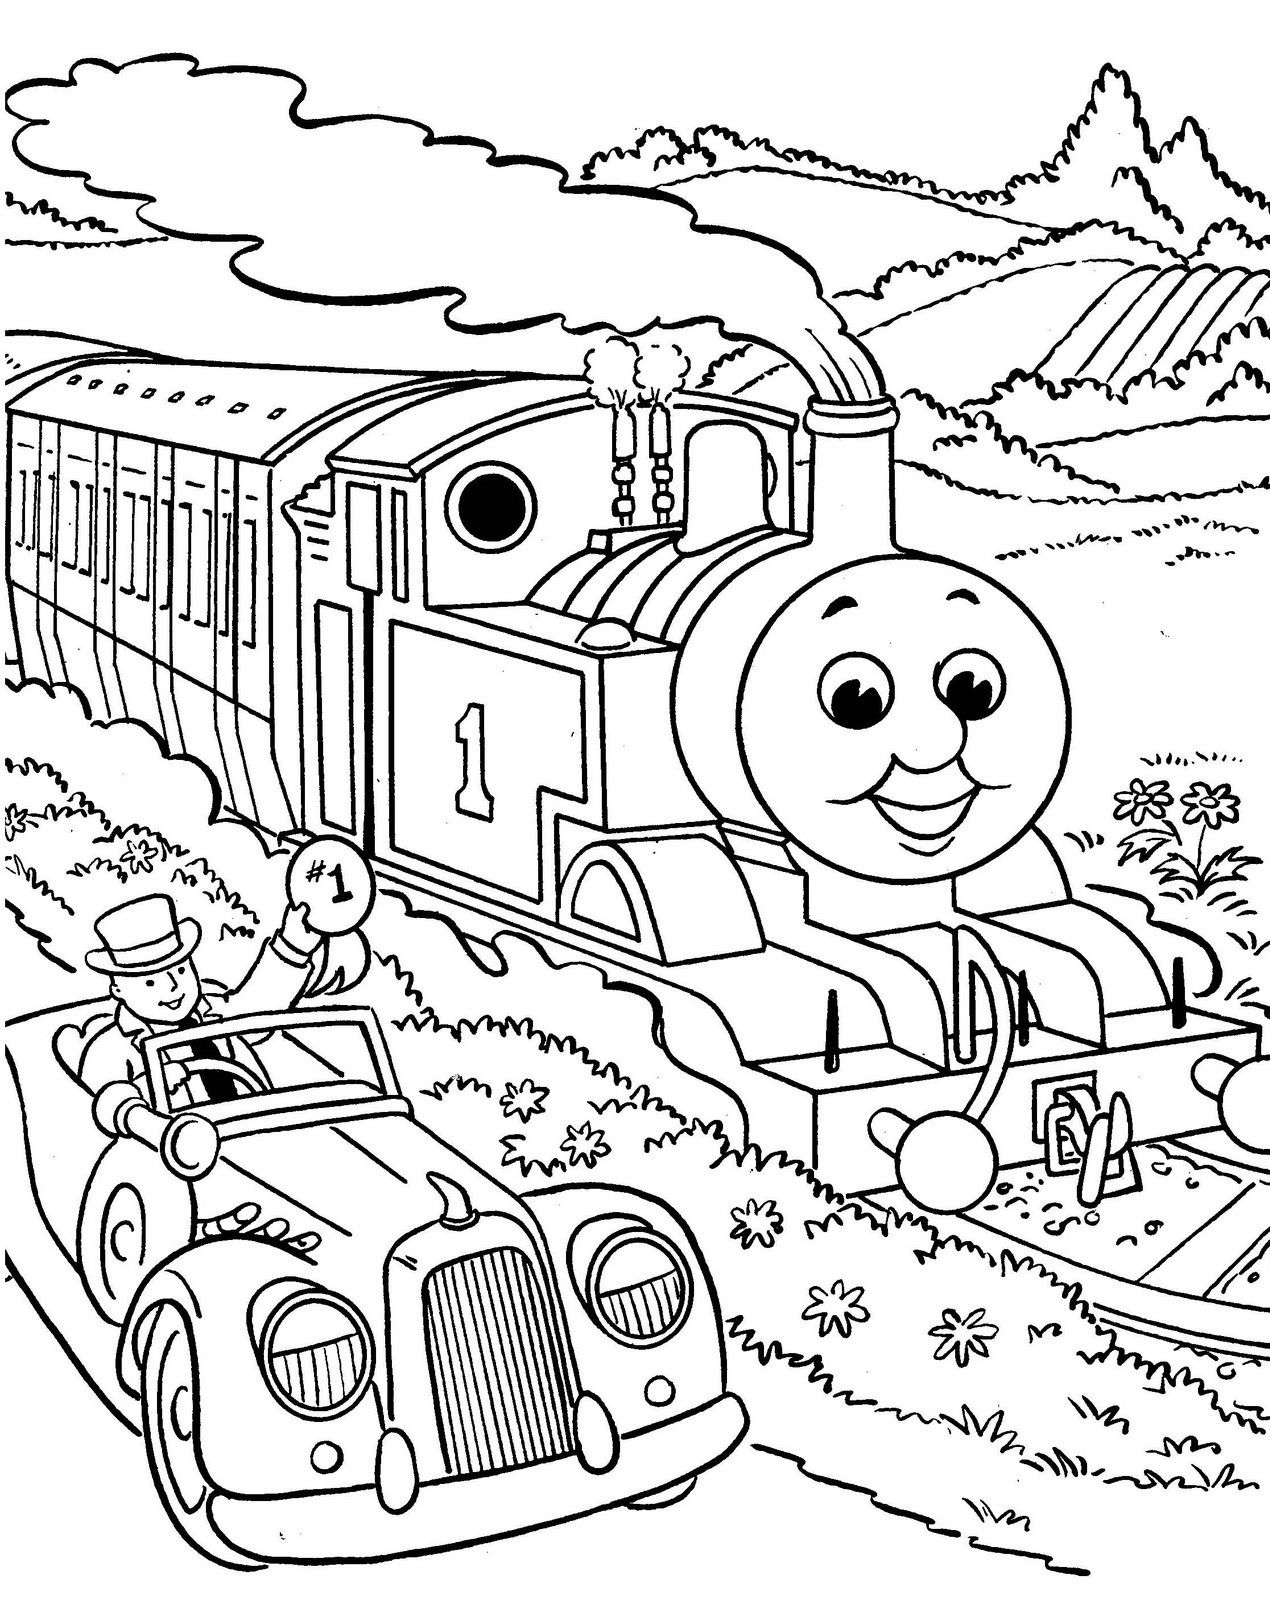 thomas and friends coloring pages thomas and friends coloring pages for kids printable free and coloring friends pages thomas